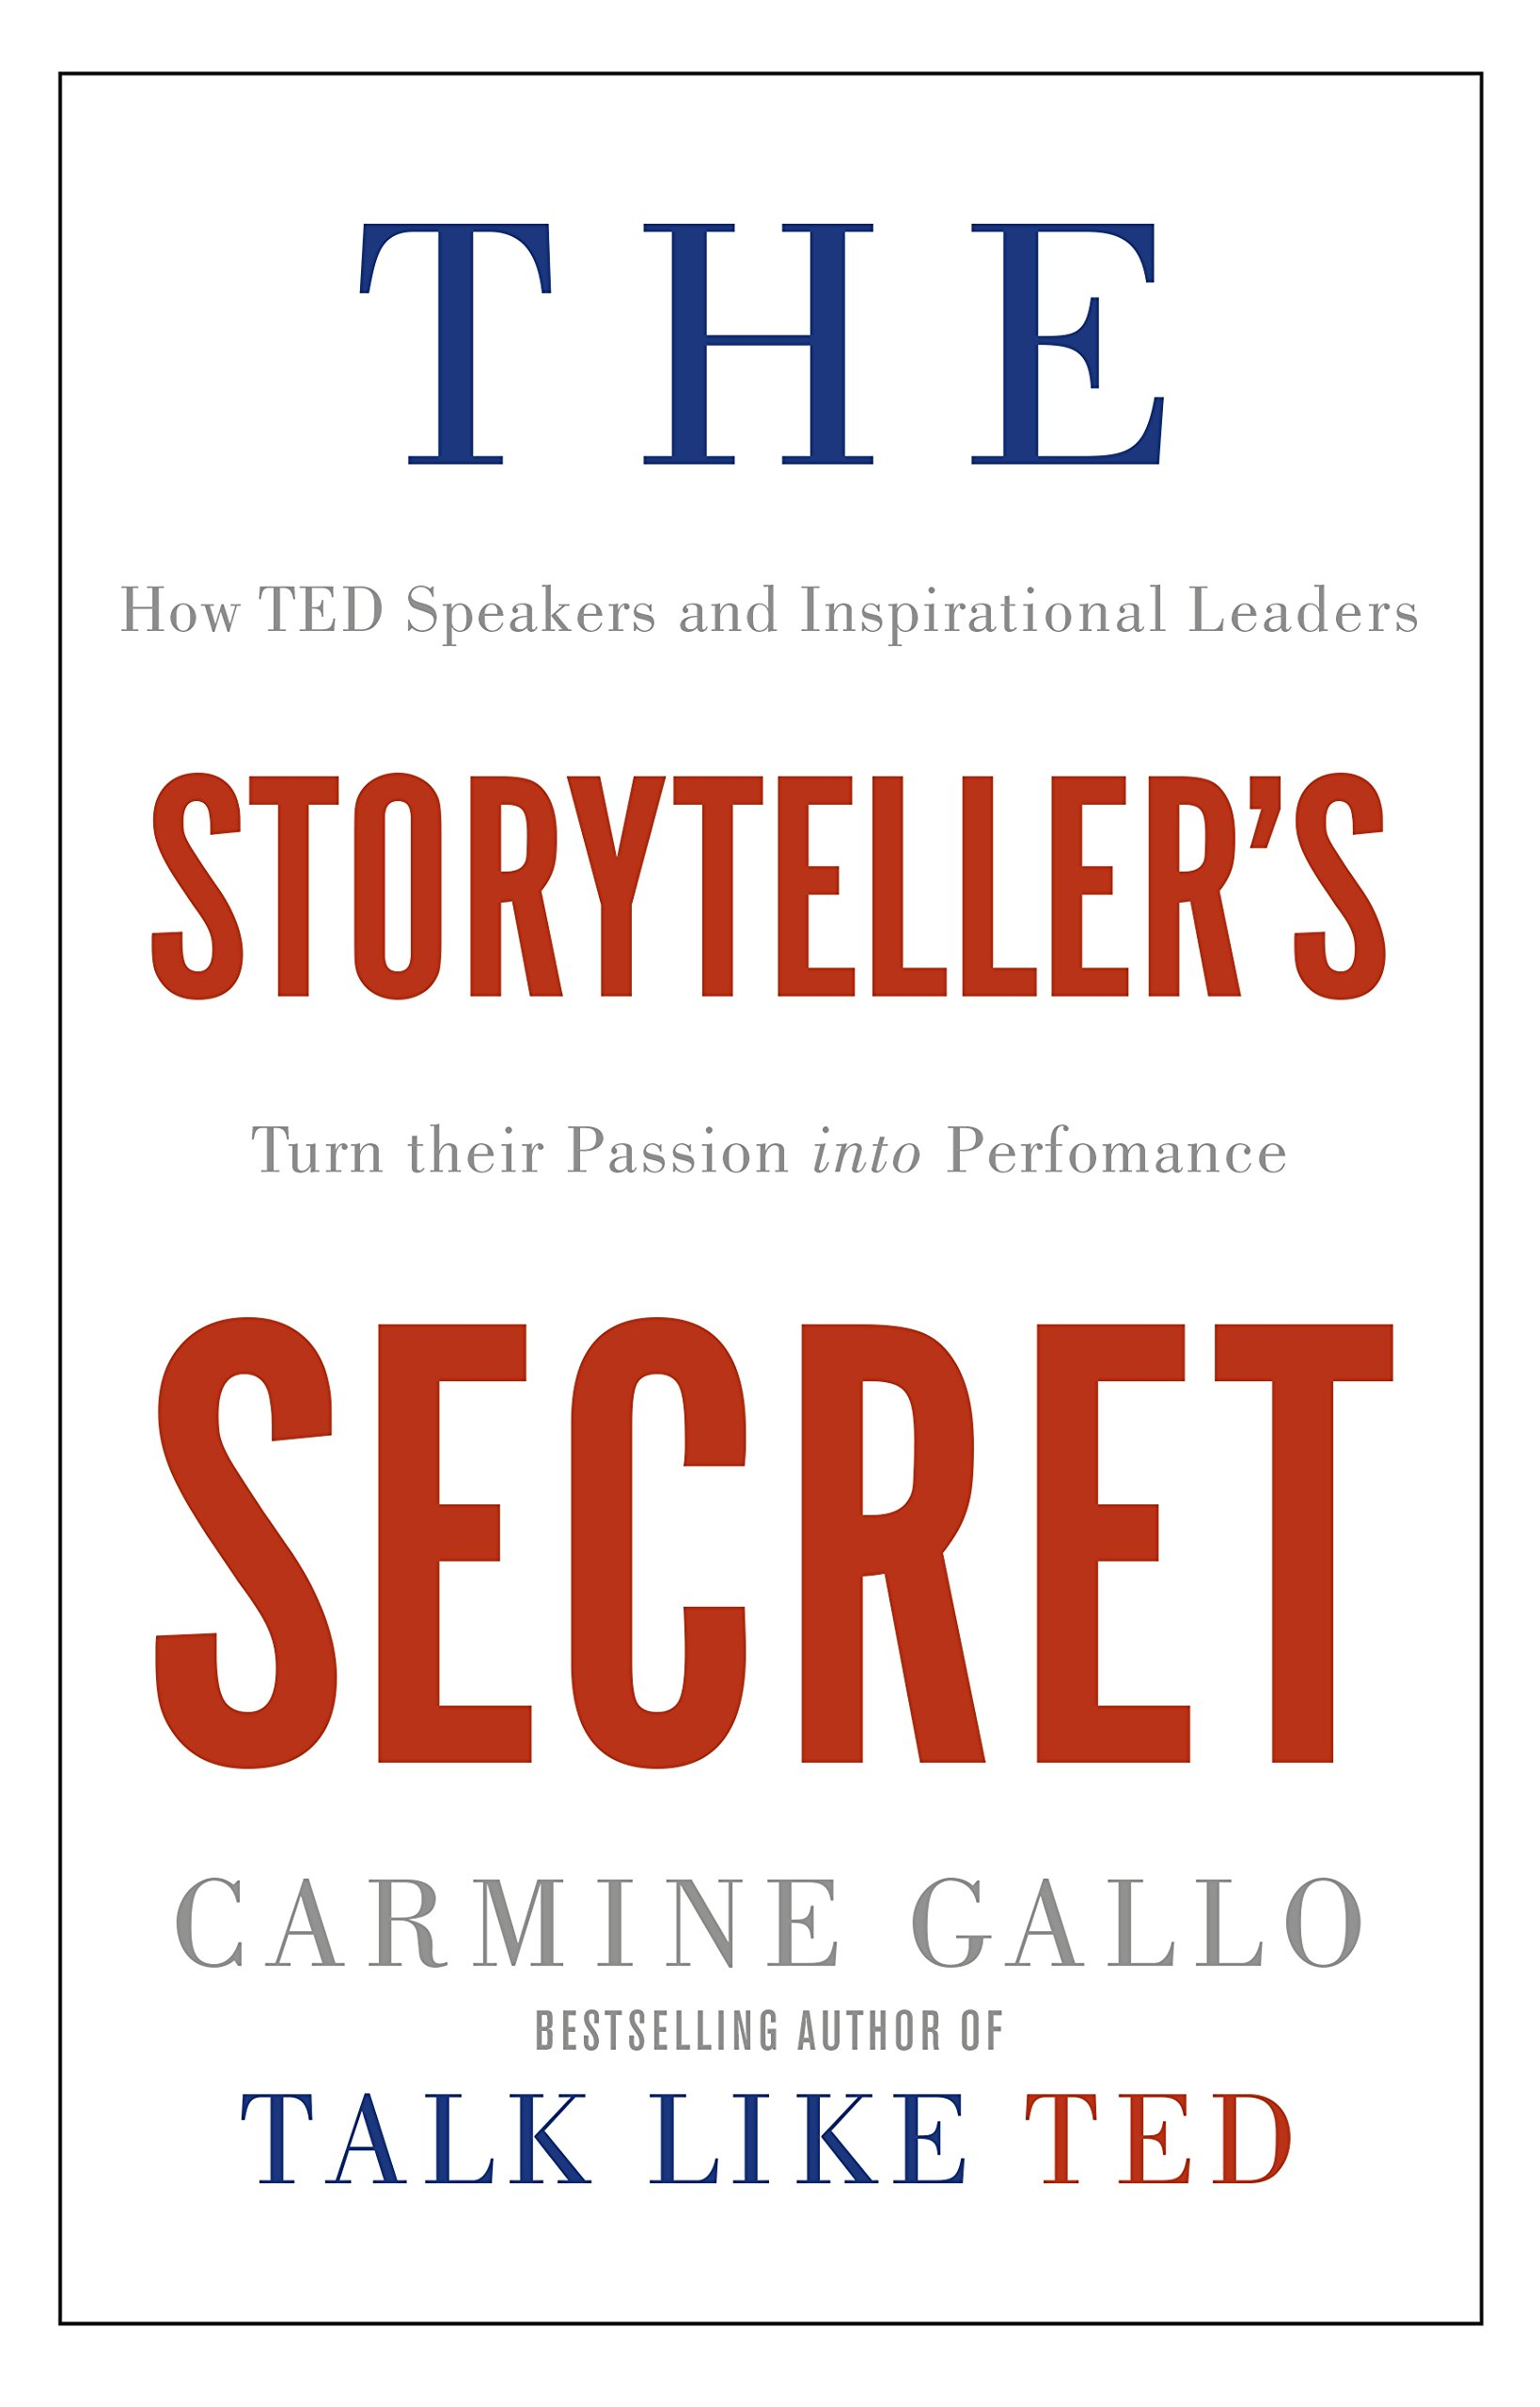 the presentation secrets of steve jobs how to be insanely great the storyteller s secret how ted speakers and inspirational leaders turn their passion into performance